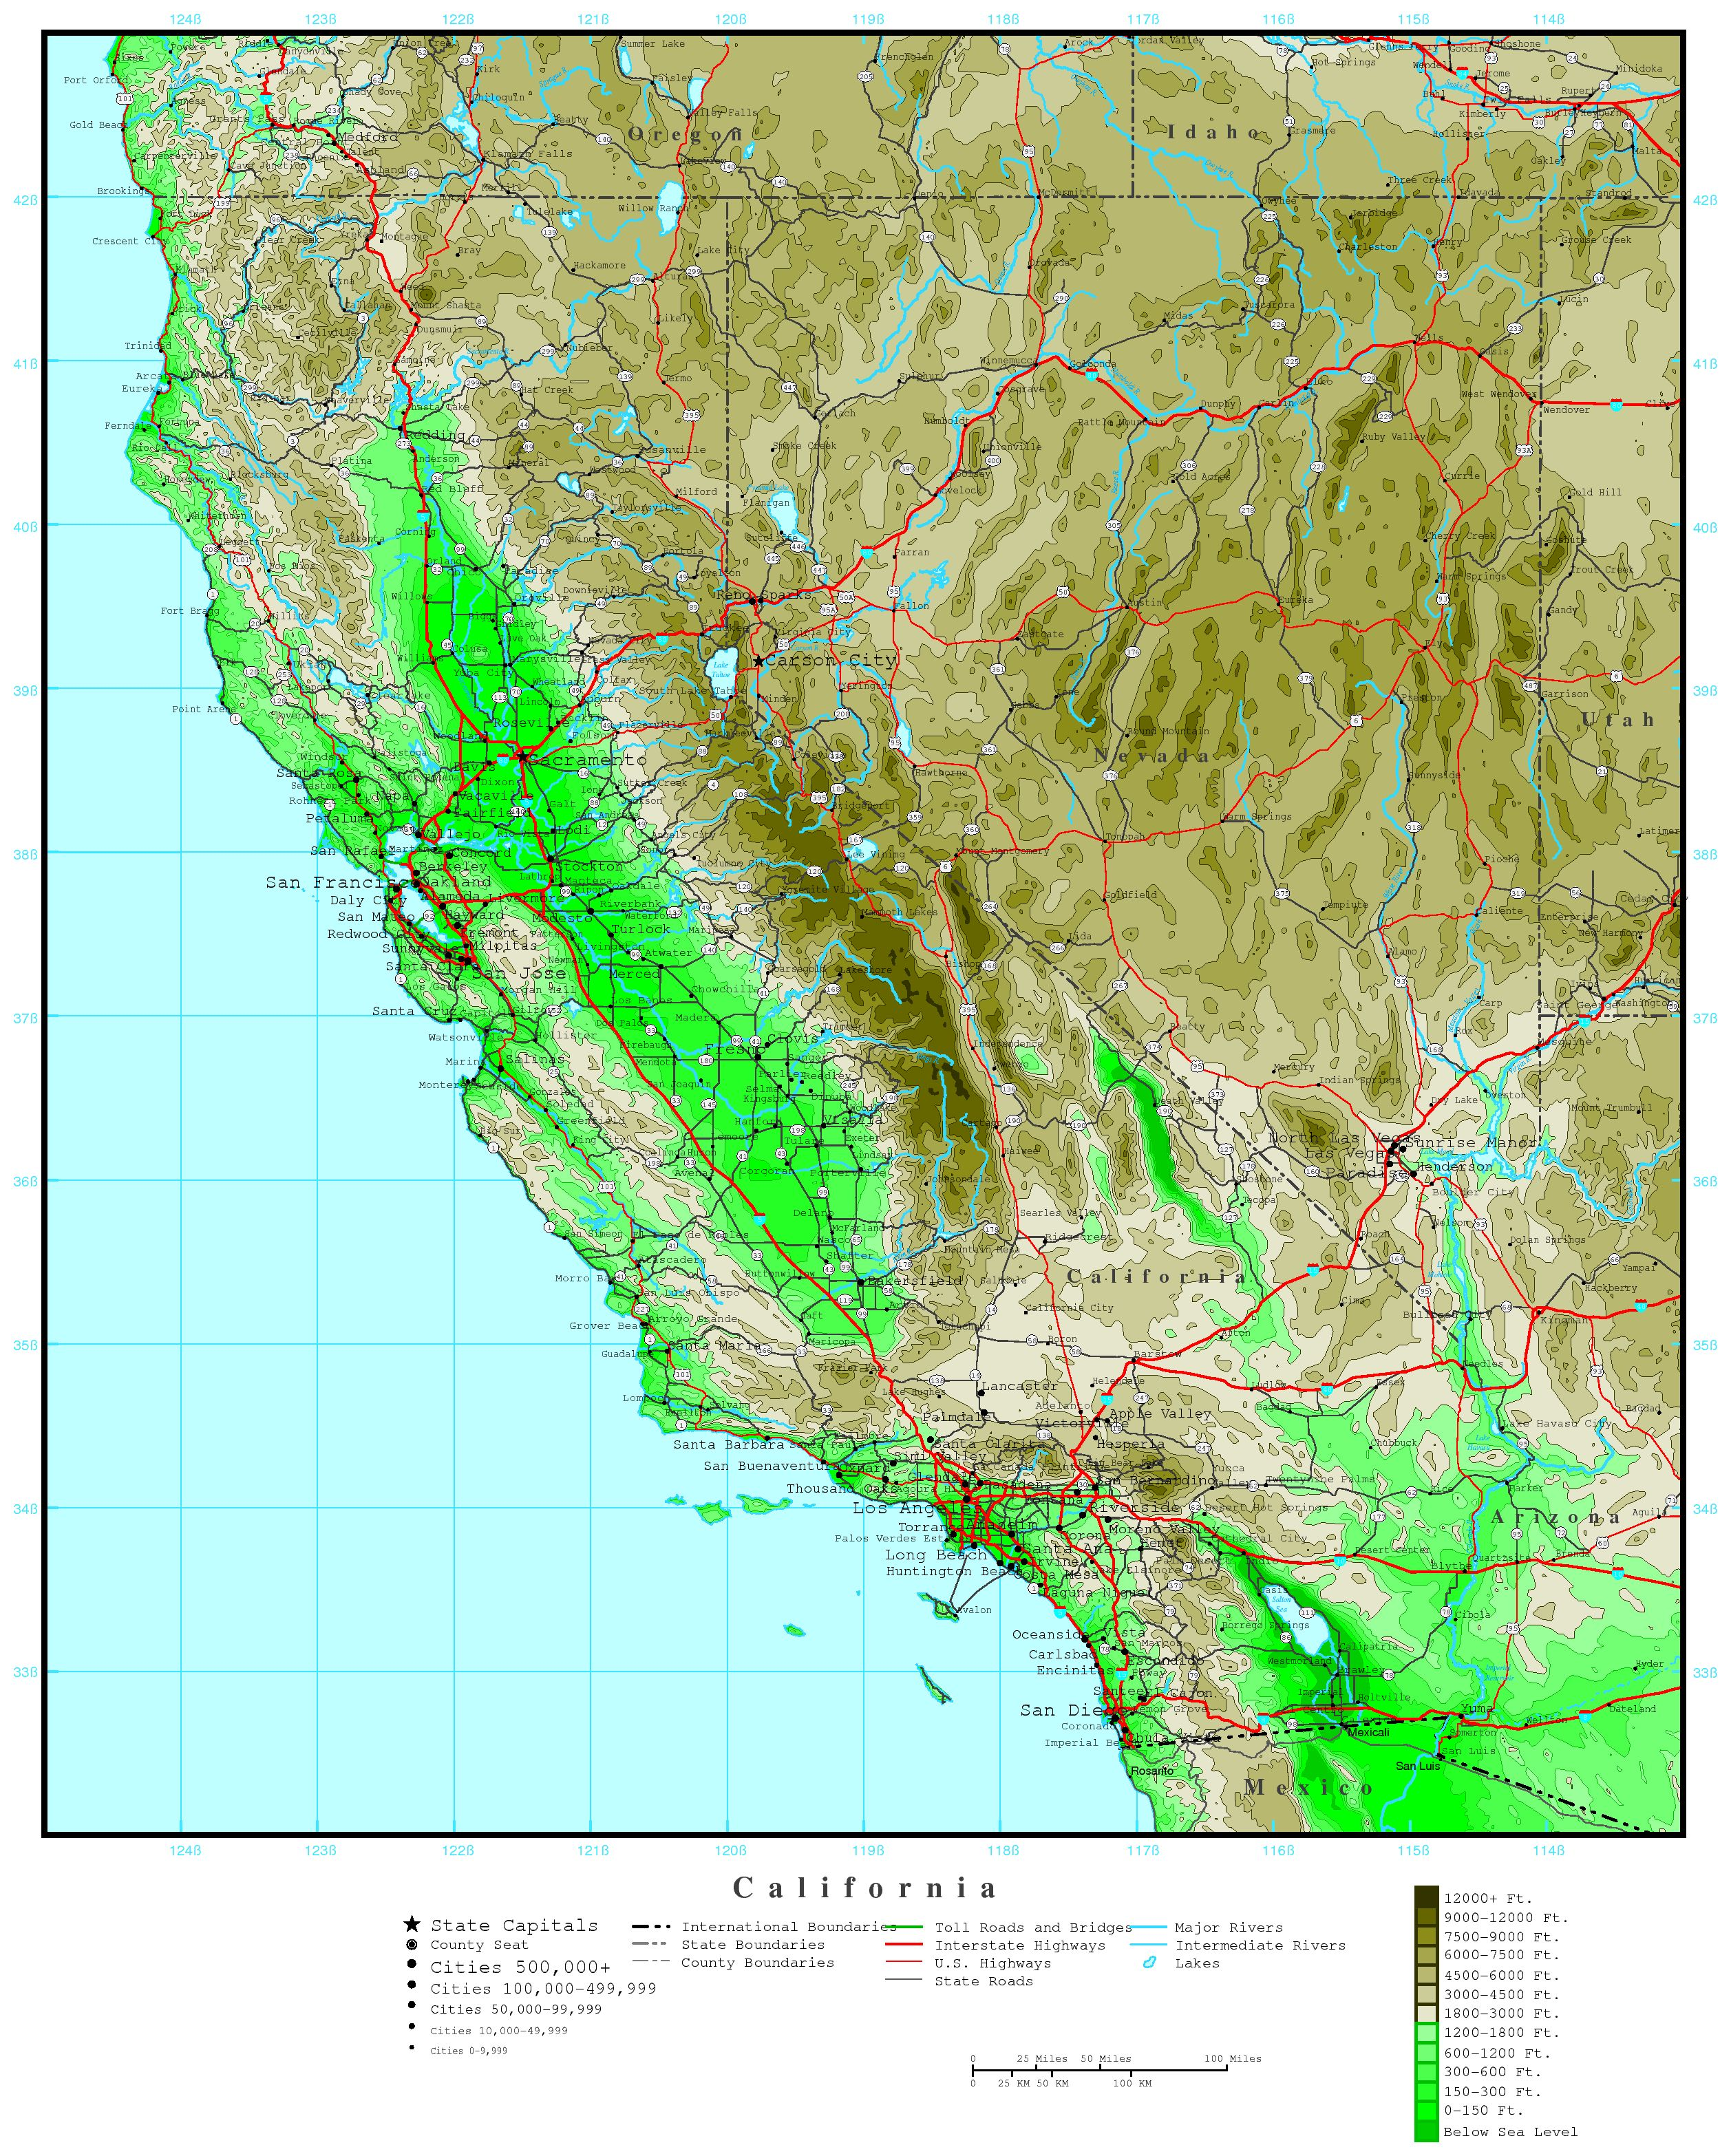 California Elevation Map on culture of yosemite, political map of yosemite, weather map of yosemite, physical map of yosemite, topo map of yosemite, road map of yosemite, state map of yosemite, geological map of yosemite, climate of yosemite, geography of yosemite,